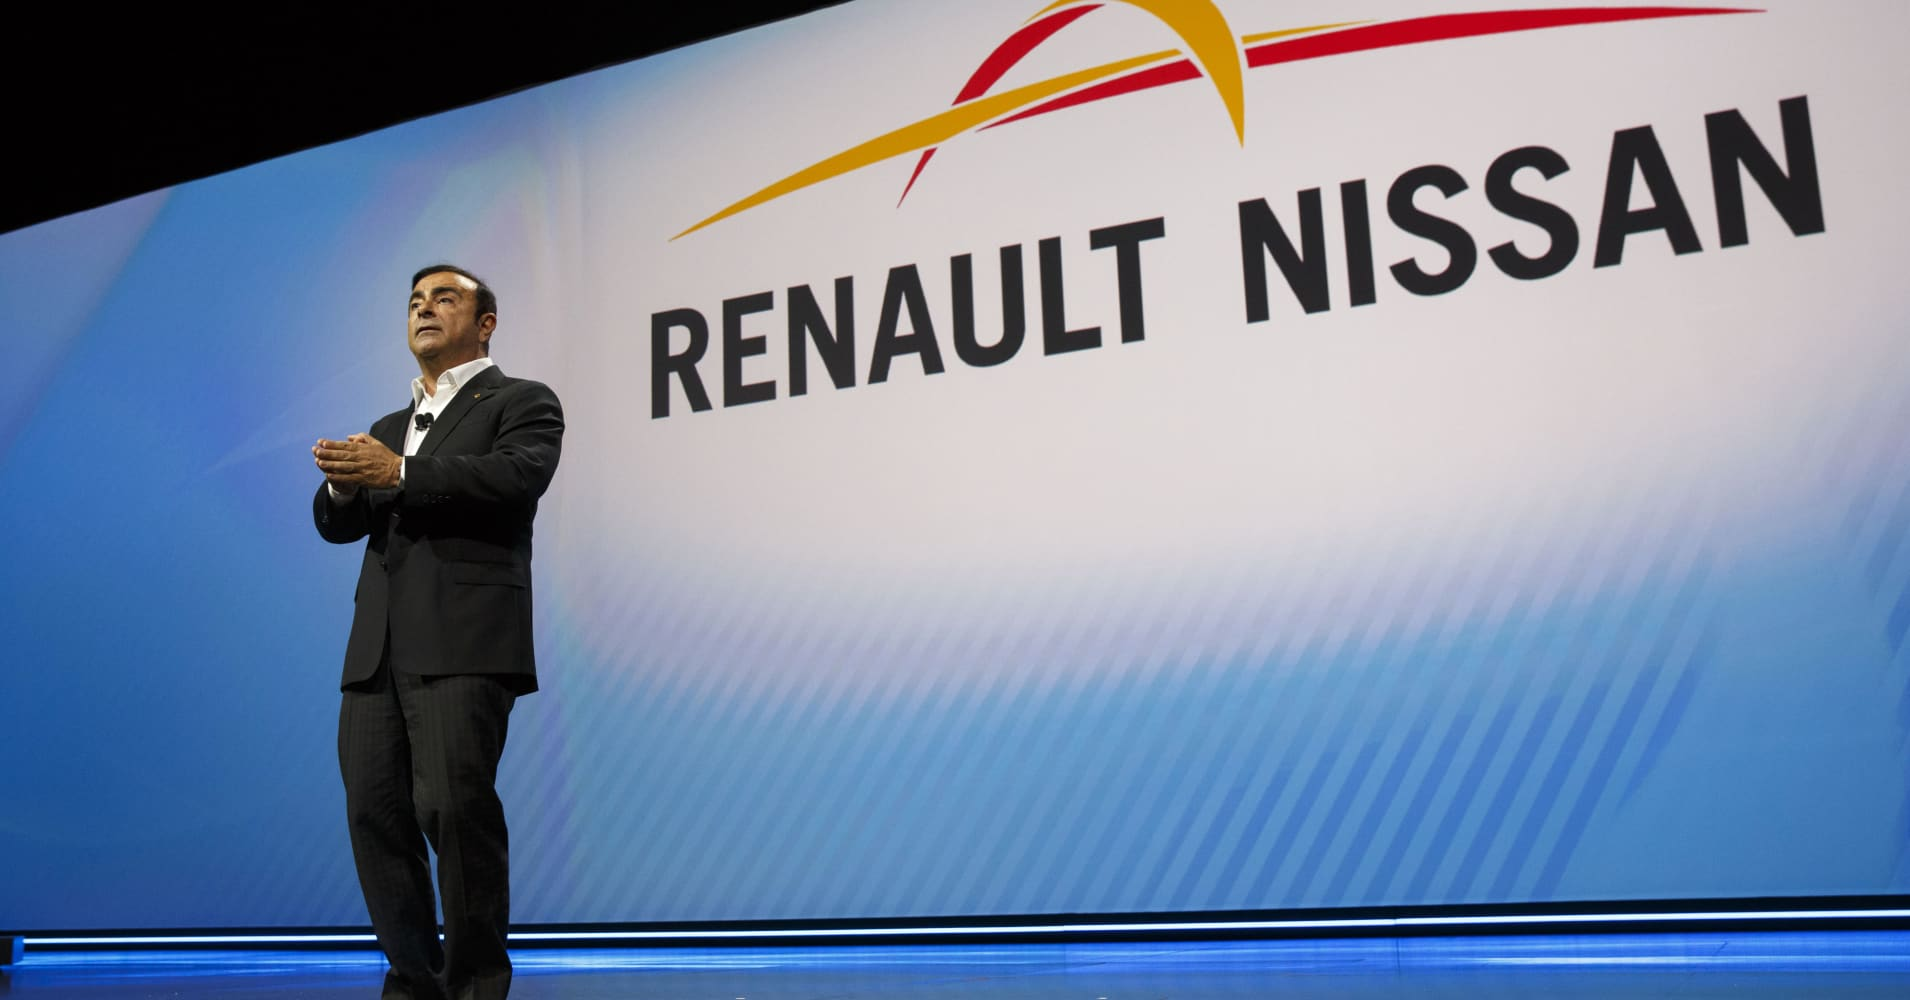 Carlos Ghosn no longer capable of leading Renault says Le Maire